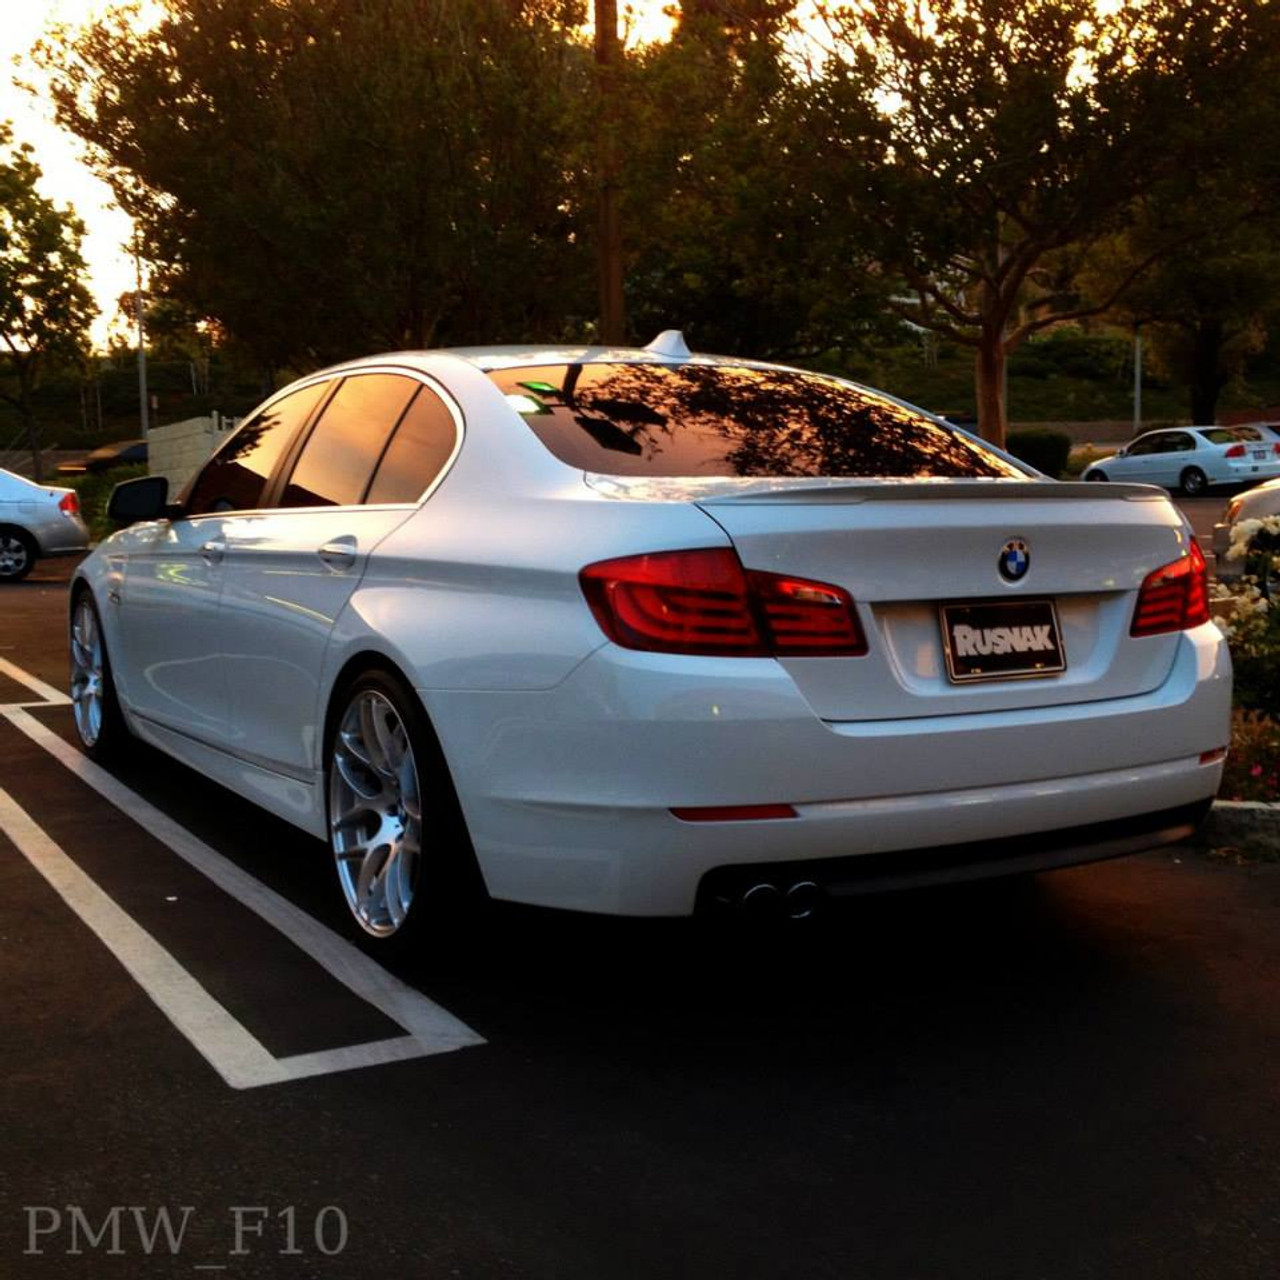 Bmw F10 Custom: BMW F10/F10 M5 Painted Performance Trunk Spoiler (ABS